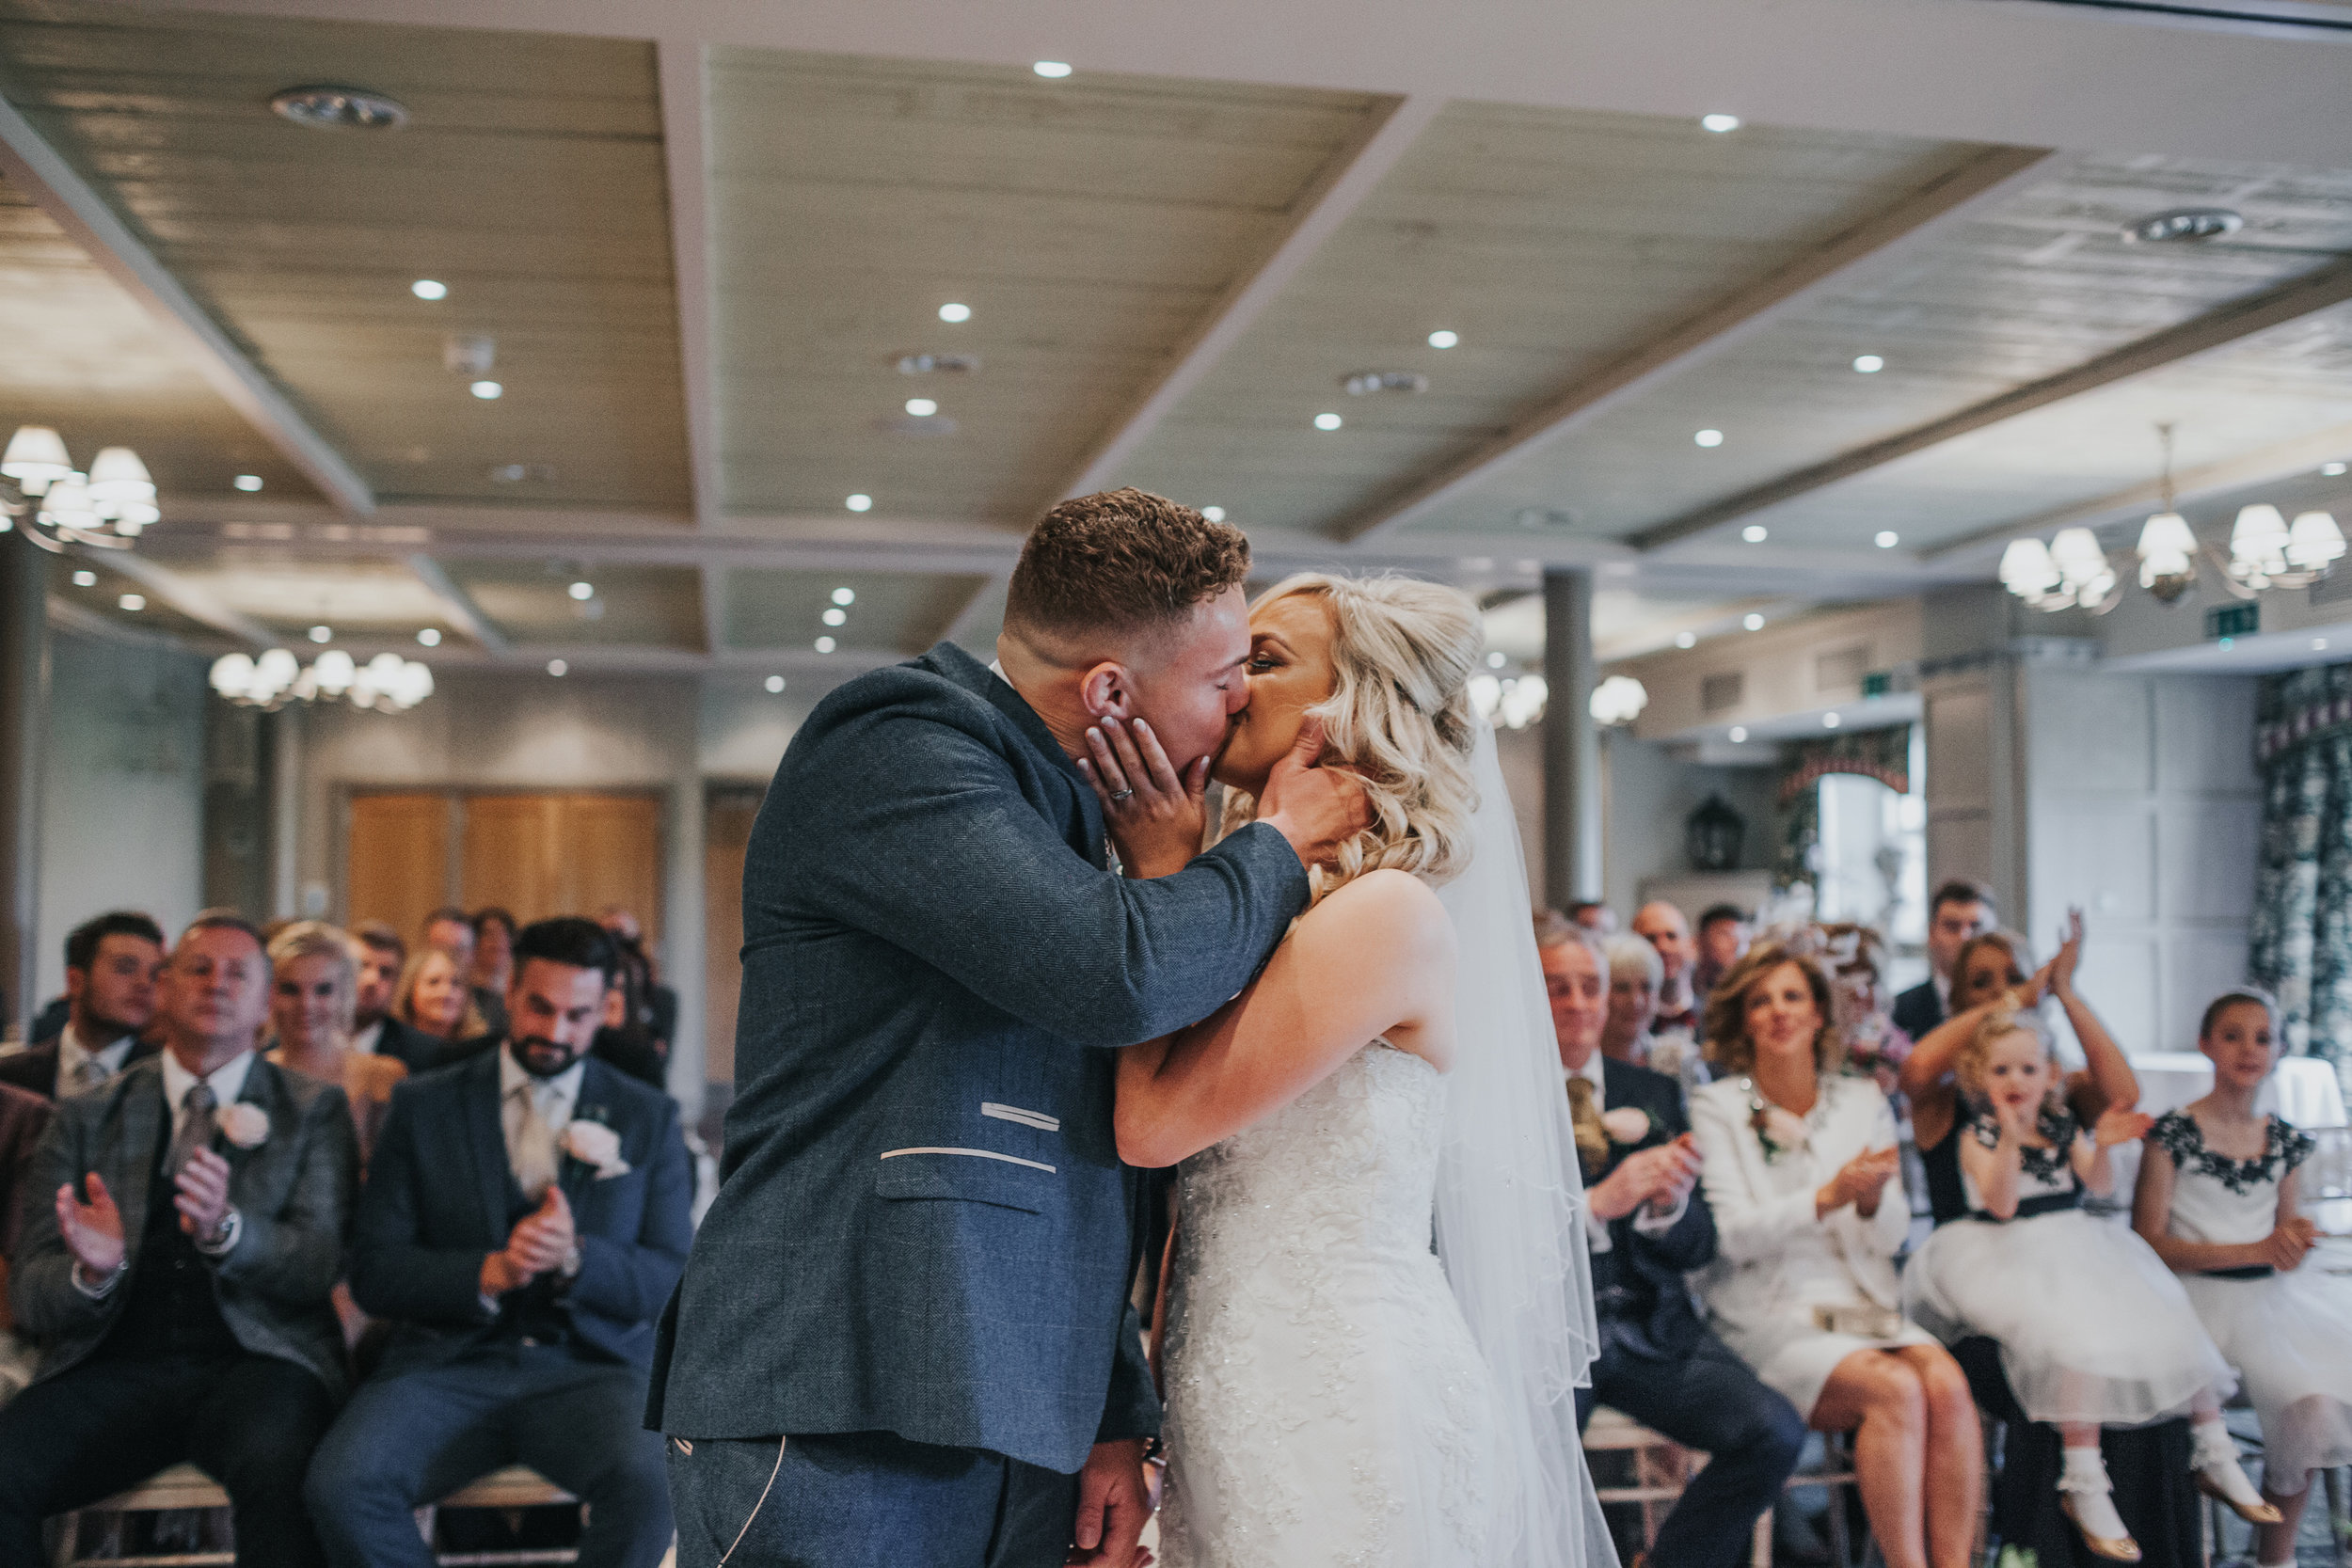 Bride and groom kiss on their wedding day.